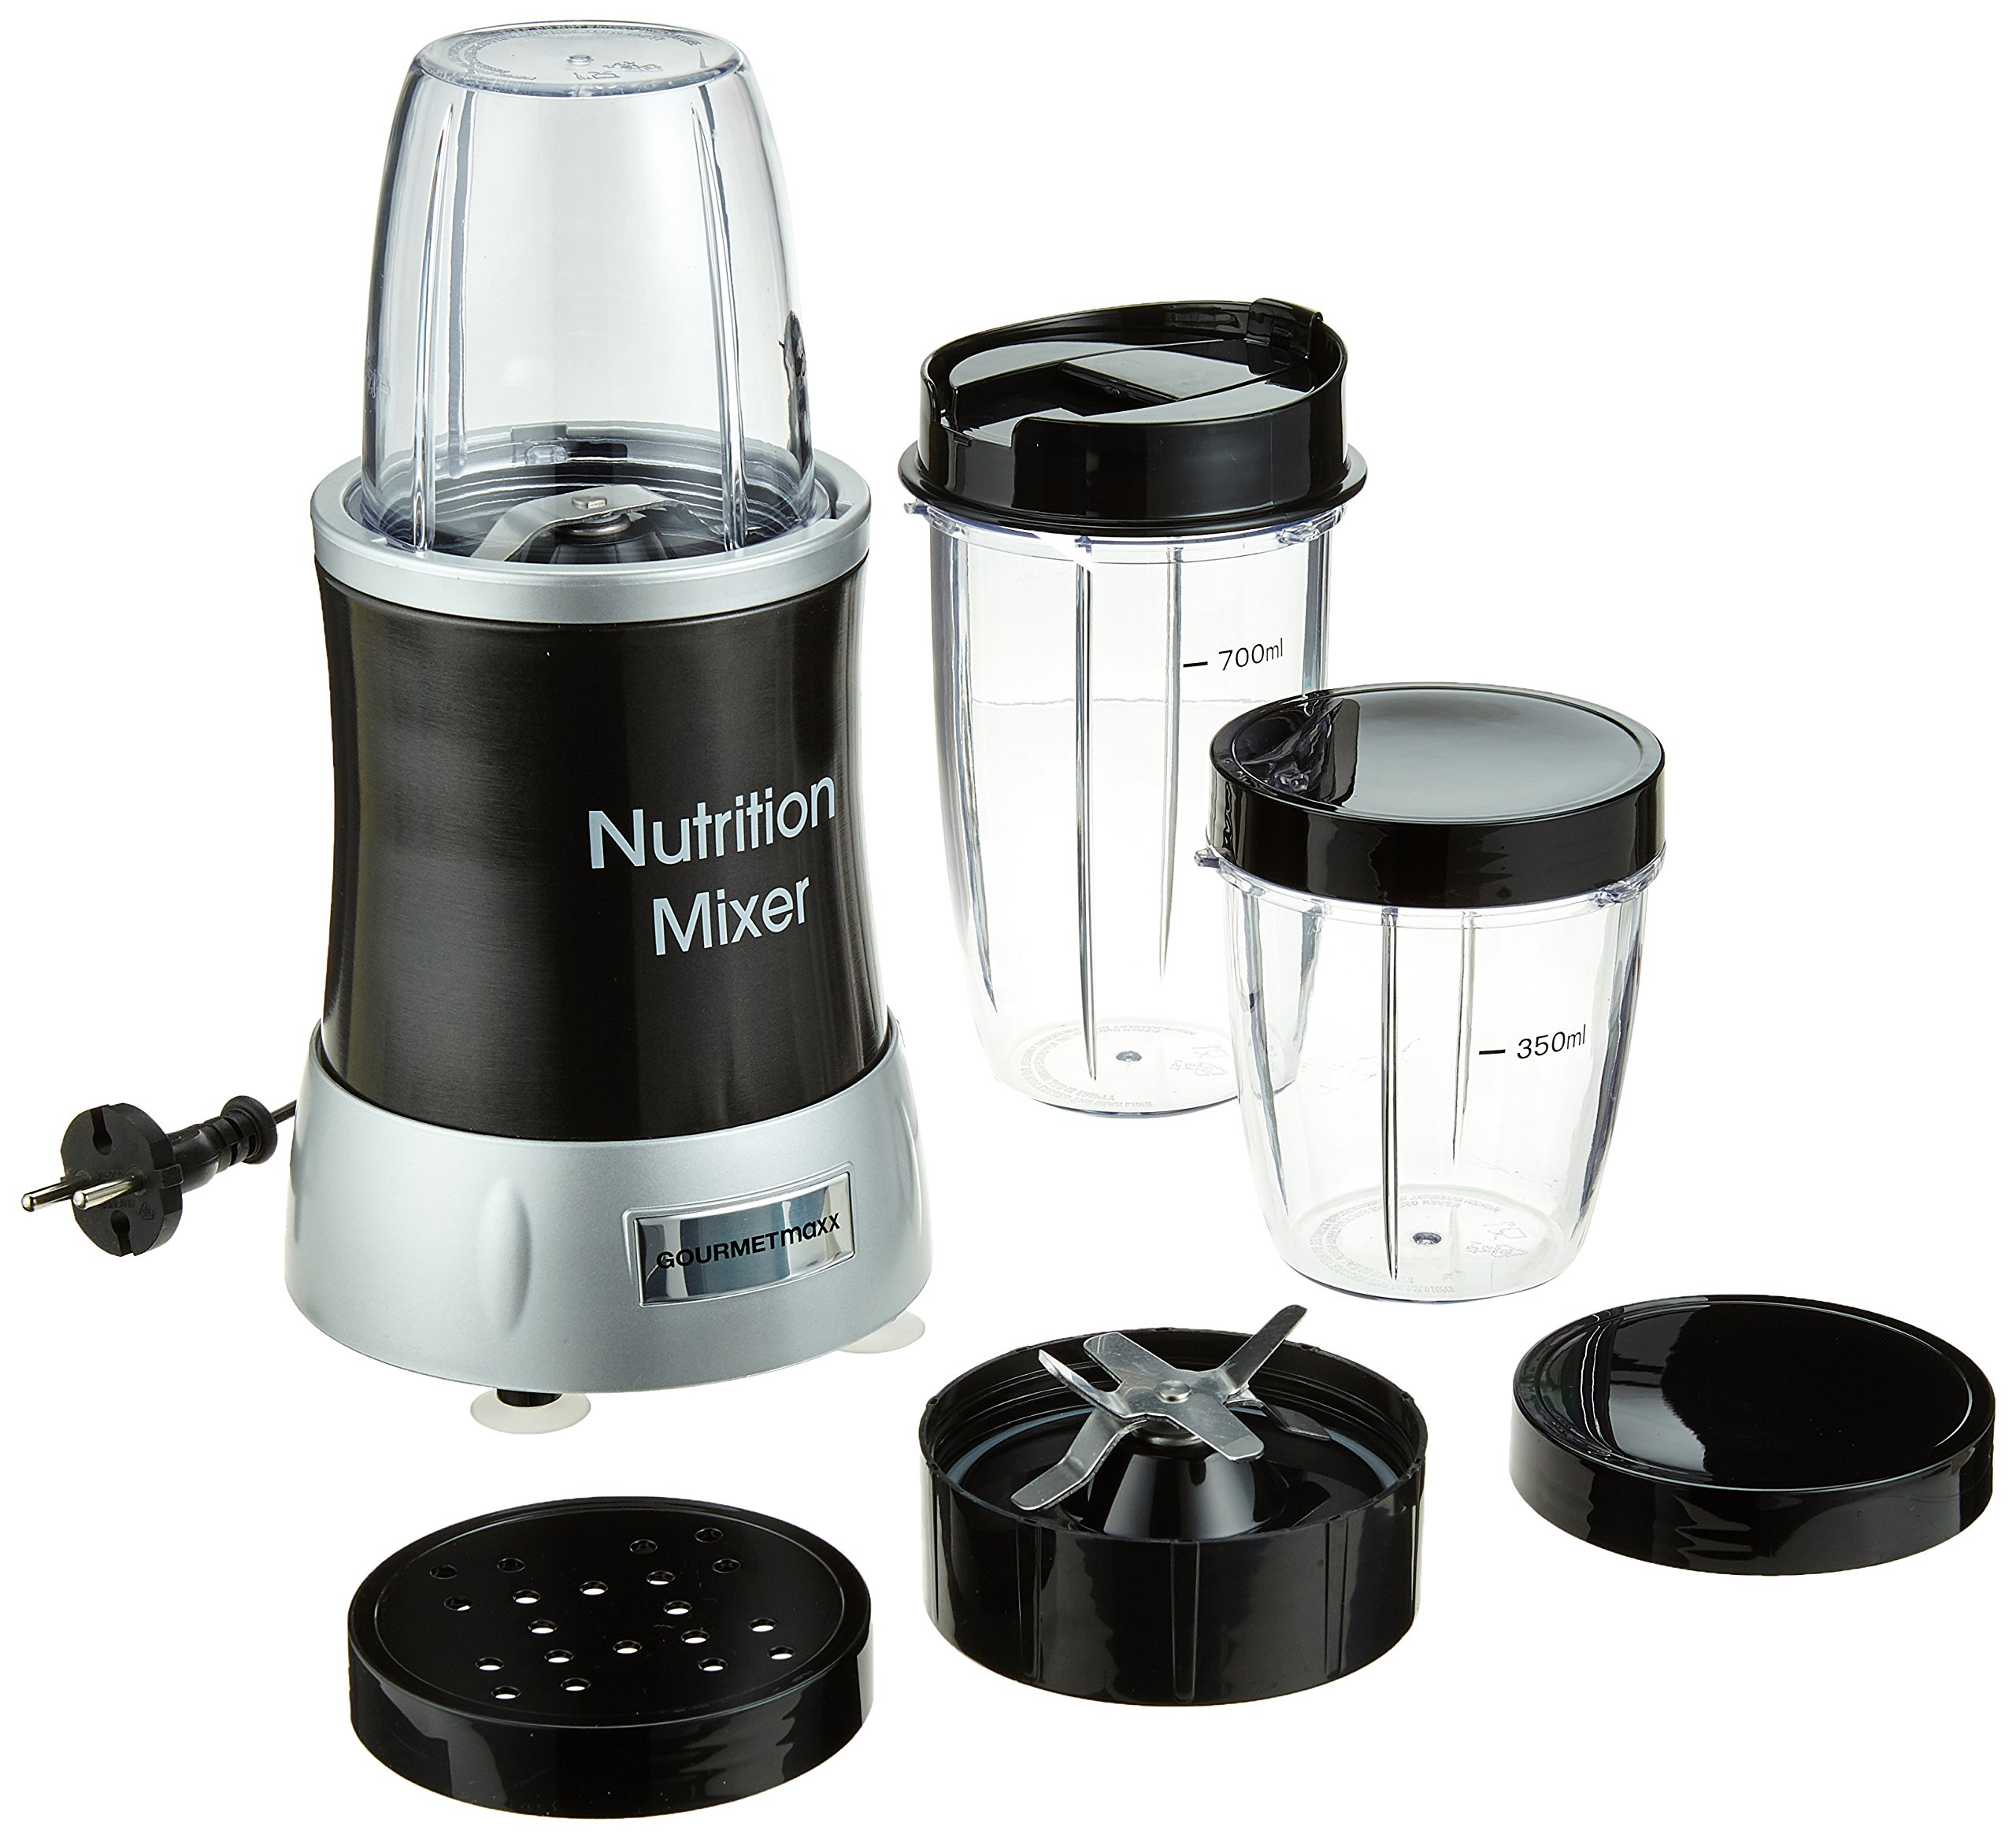 GOURMETmaxx-04201-Nutrition-Mixer-Deluxe-11-teilig-1000W-Extra-Power-22000-RPM-To-go-Deckel-7-Funktionen